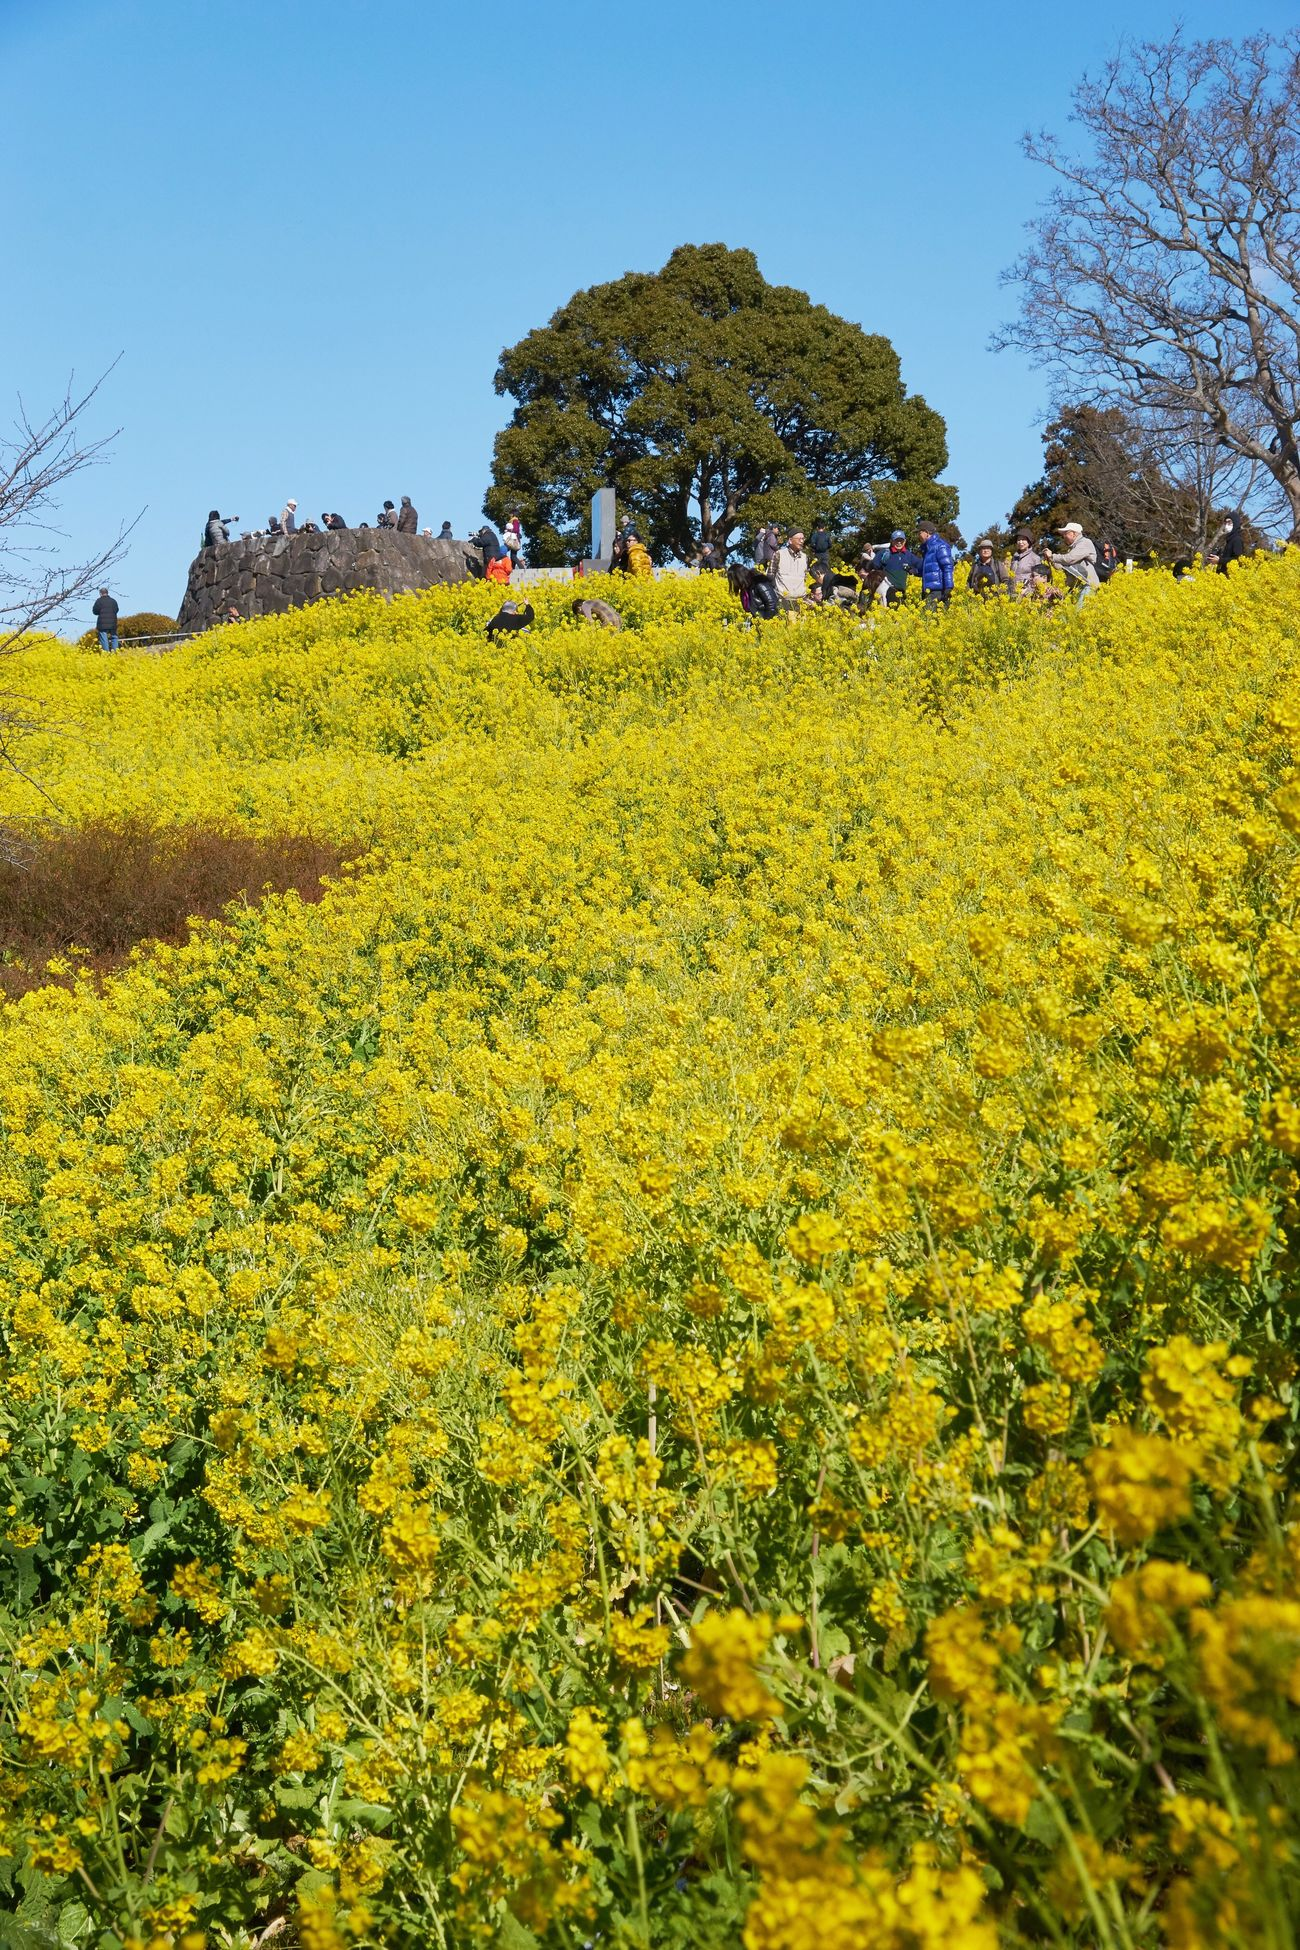 Growth Flower Yellow Nature Field Beauty In Nature Tree Freshness Rural Scene Agriculture Fragility Plant Clear Sky Outdoors No People Blossom Sky Landscape Day Tranquility Yellow Flower Eye4photography  EyeEm Nature Lover Beauty In Nature Tranquility